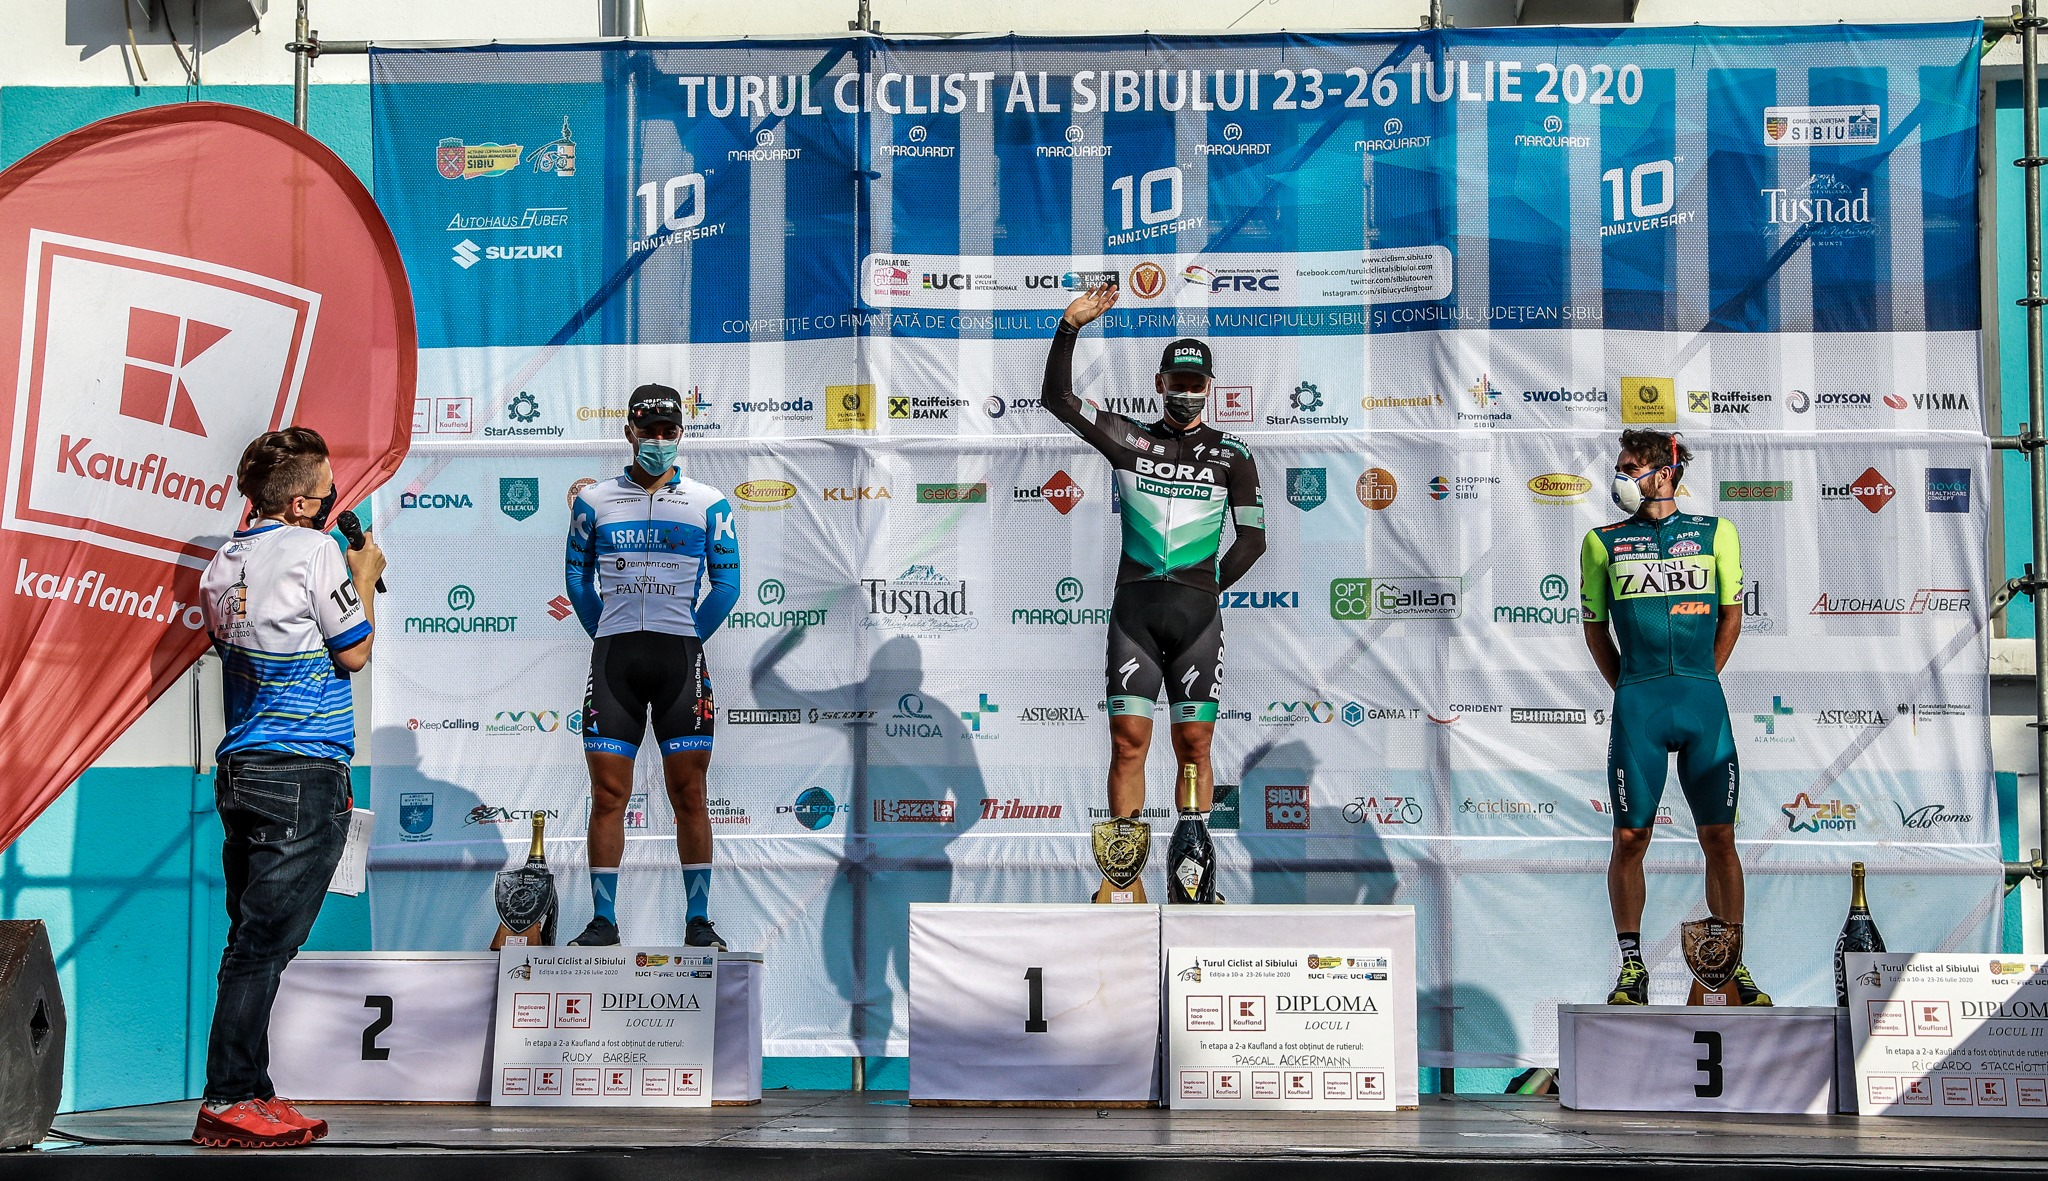 SIBIU CYCLING TOUR: RICCARDO STACCHIOTTI ACHIEVES THE FIRST PODIUM OF 2020